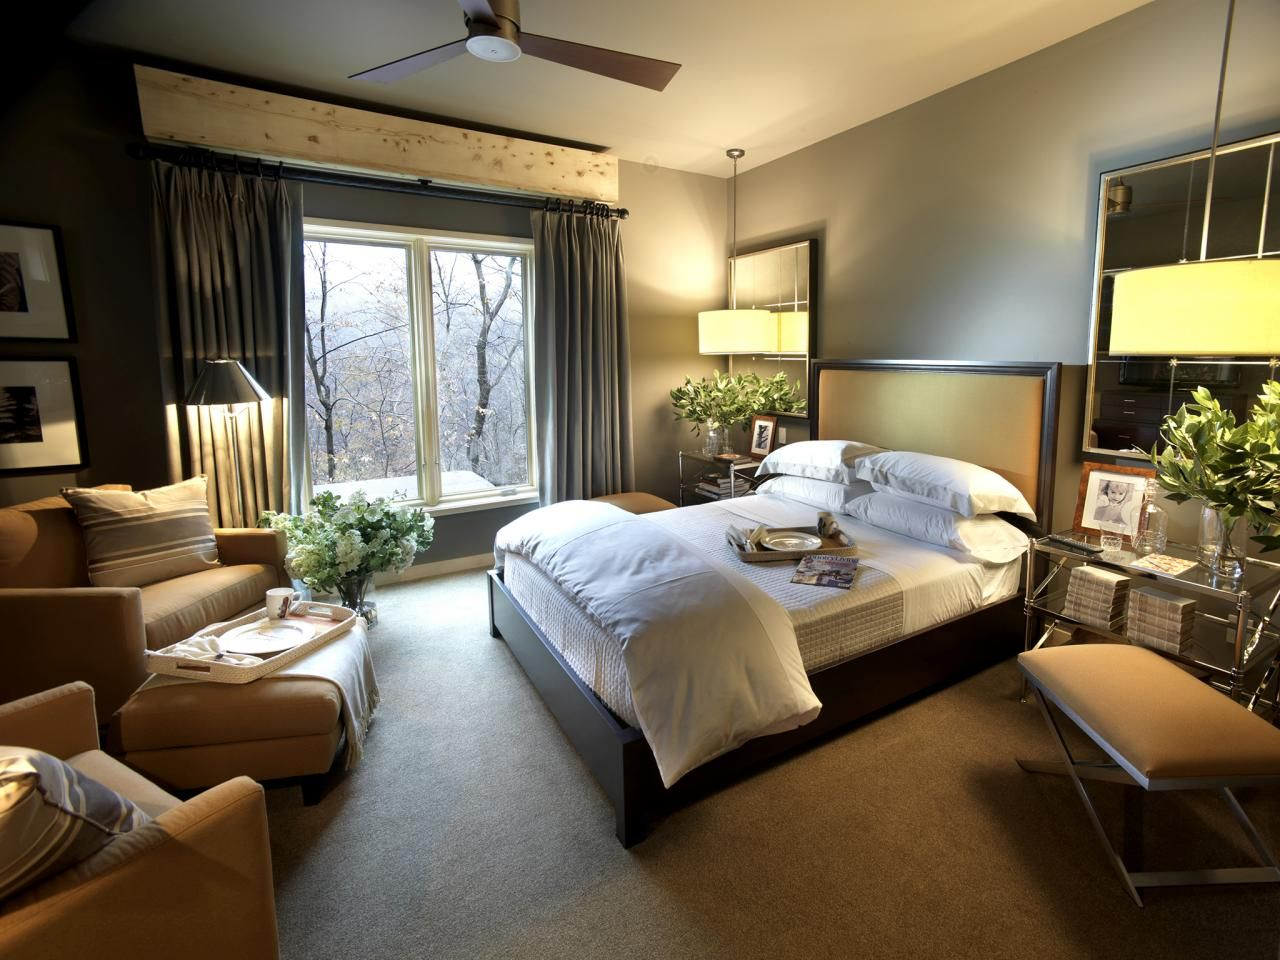 Bedroom Floor Plans   Home Remodeling - Ideas for Basements, Home Theaters & More   HGTV